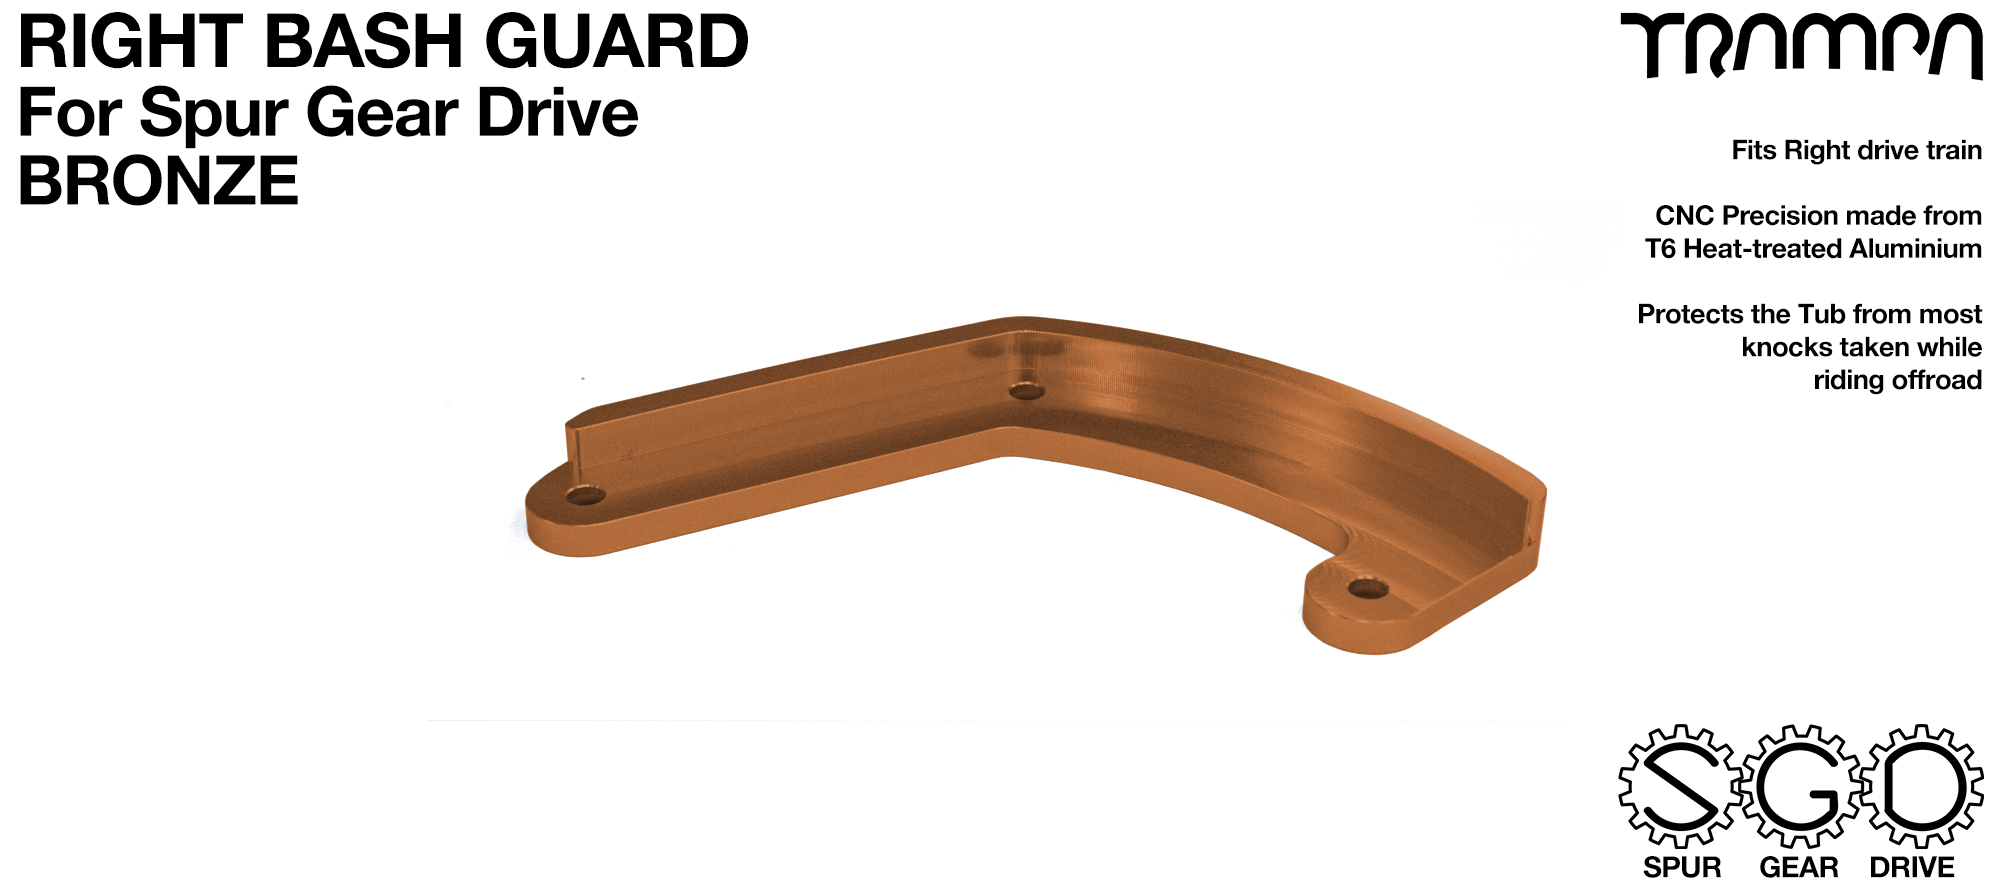 MkII Spur Gear Drive Bash Guard - RIGHT Side - BRONZE